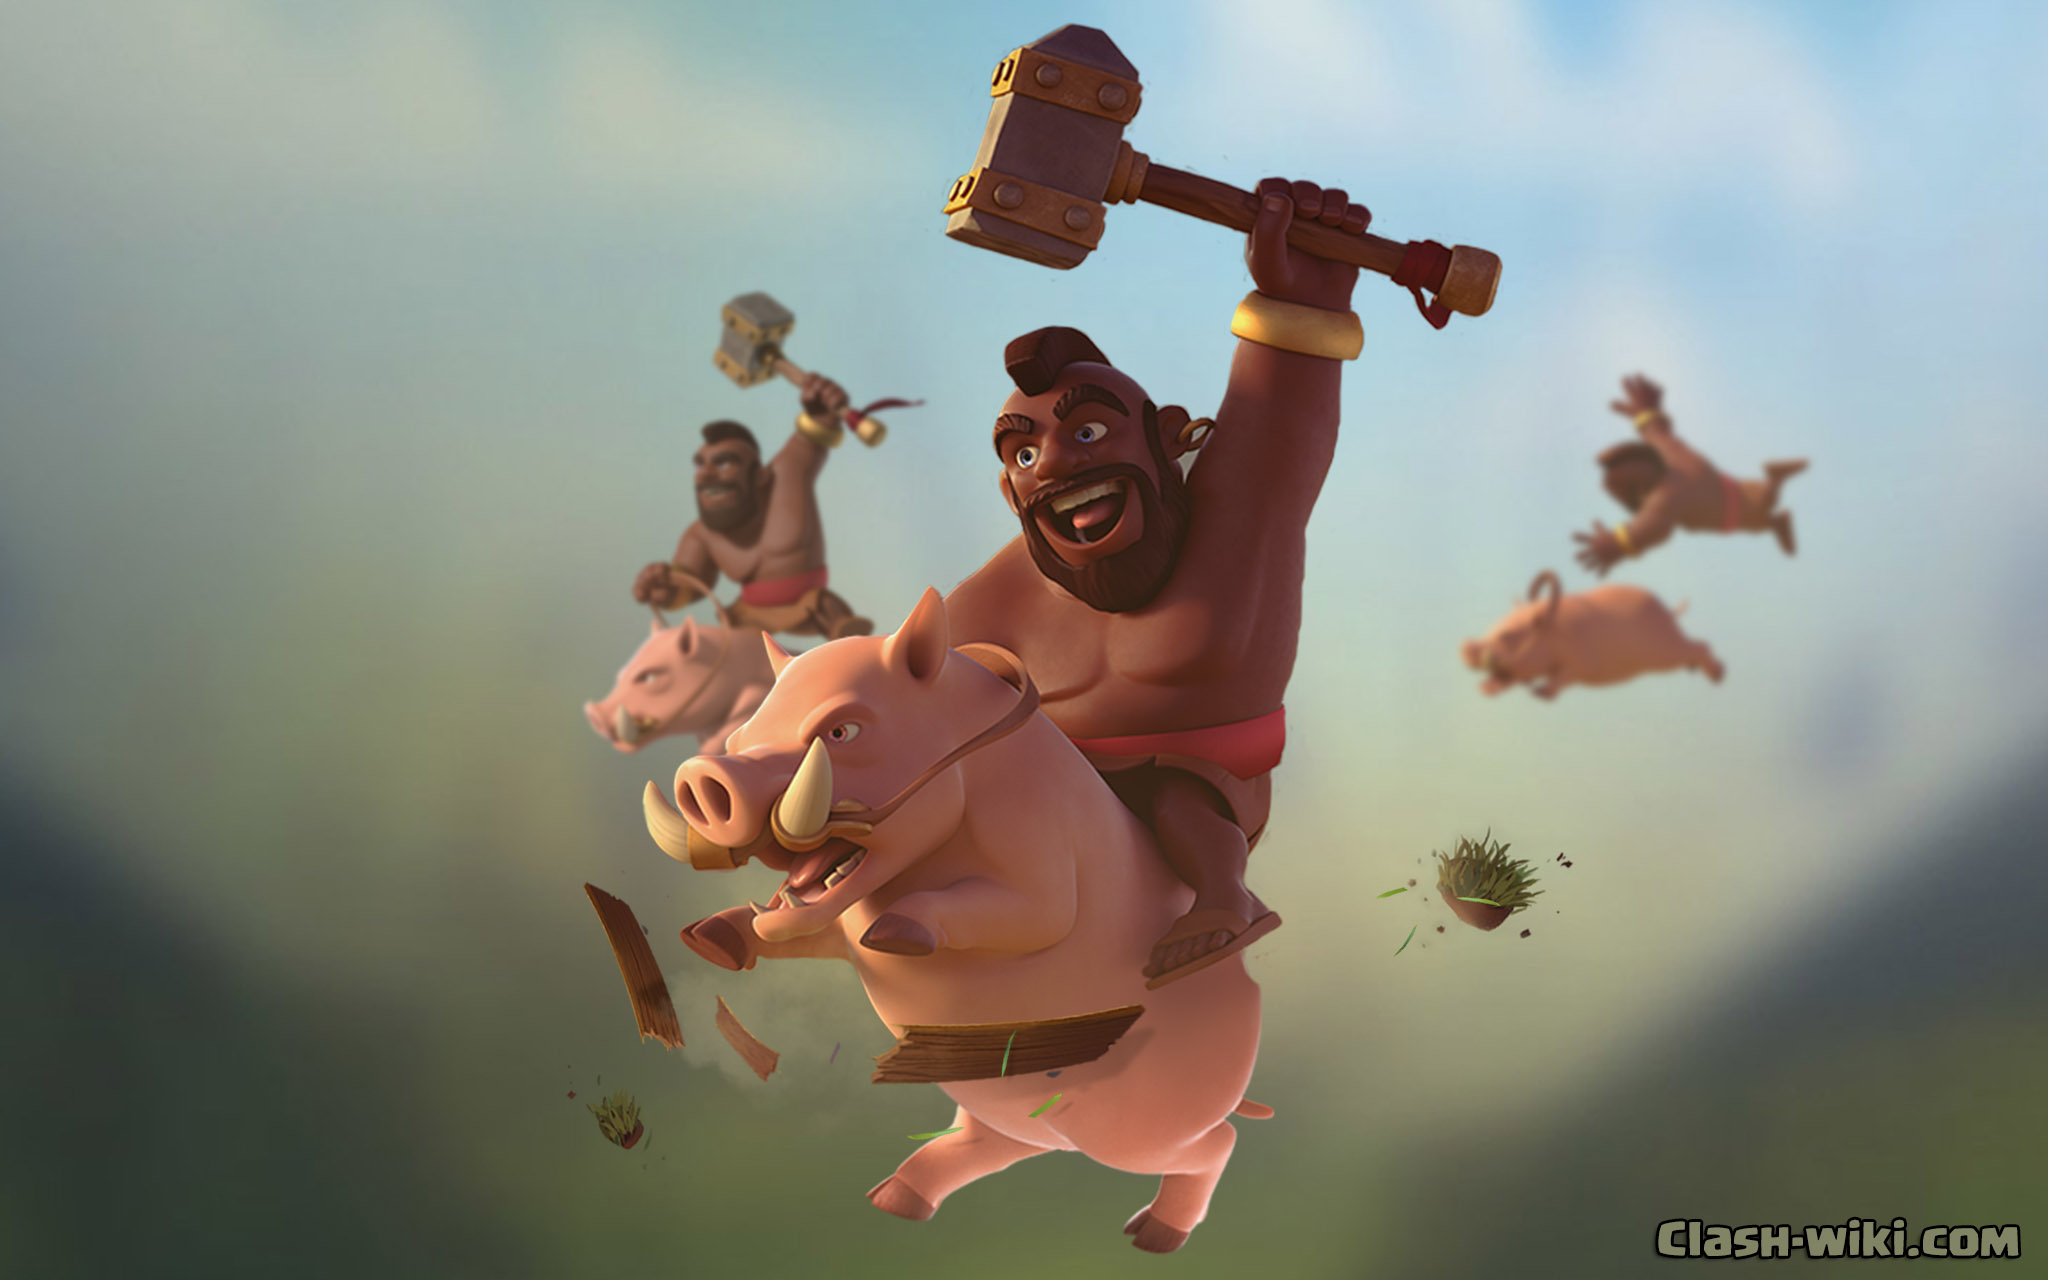 Clash of Clans Wallpapers clash wikicom 2048x1280